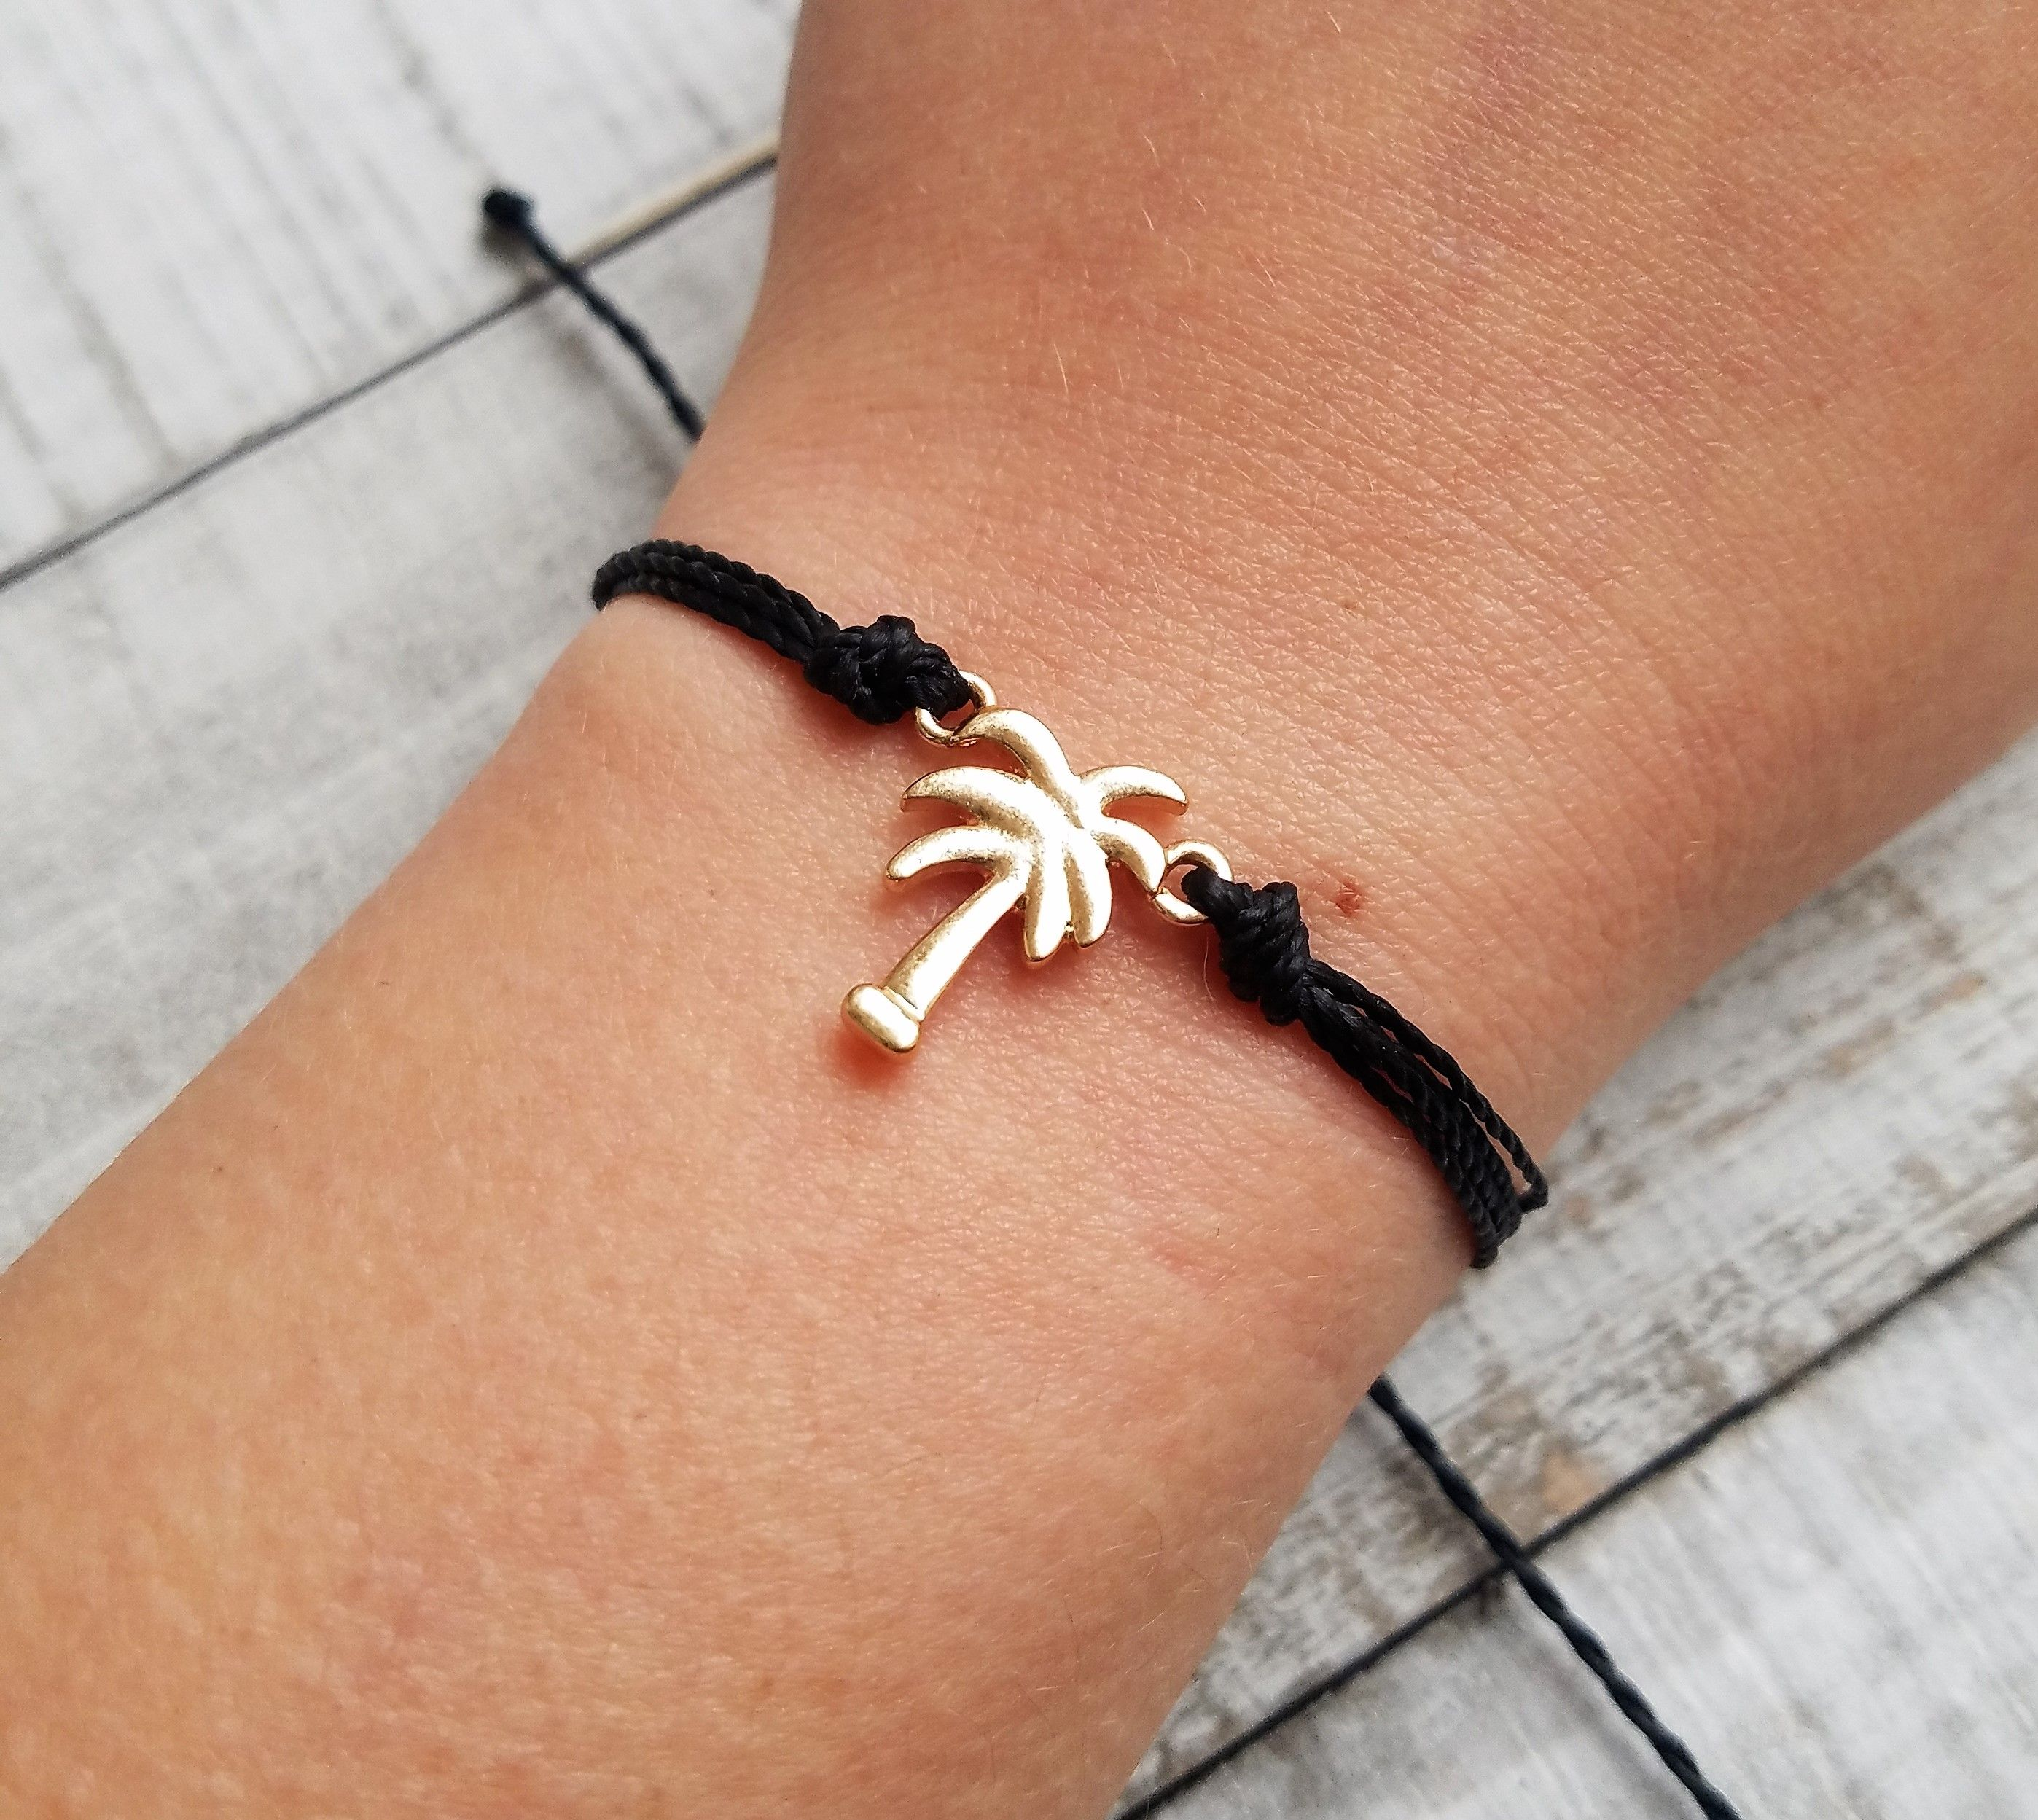 Black and Gold Palm Tree Bracelet available on Etsy @TheBeachnJewelryShop #thebeachnjewelryshop #palmtree #beach #etsyshop